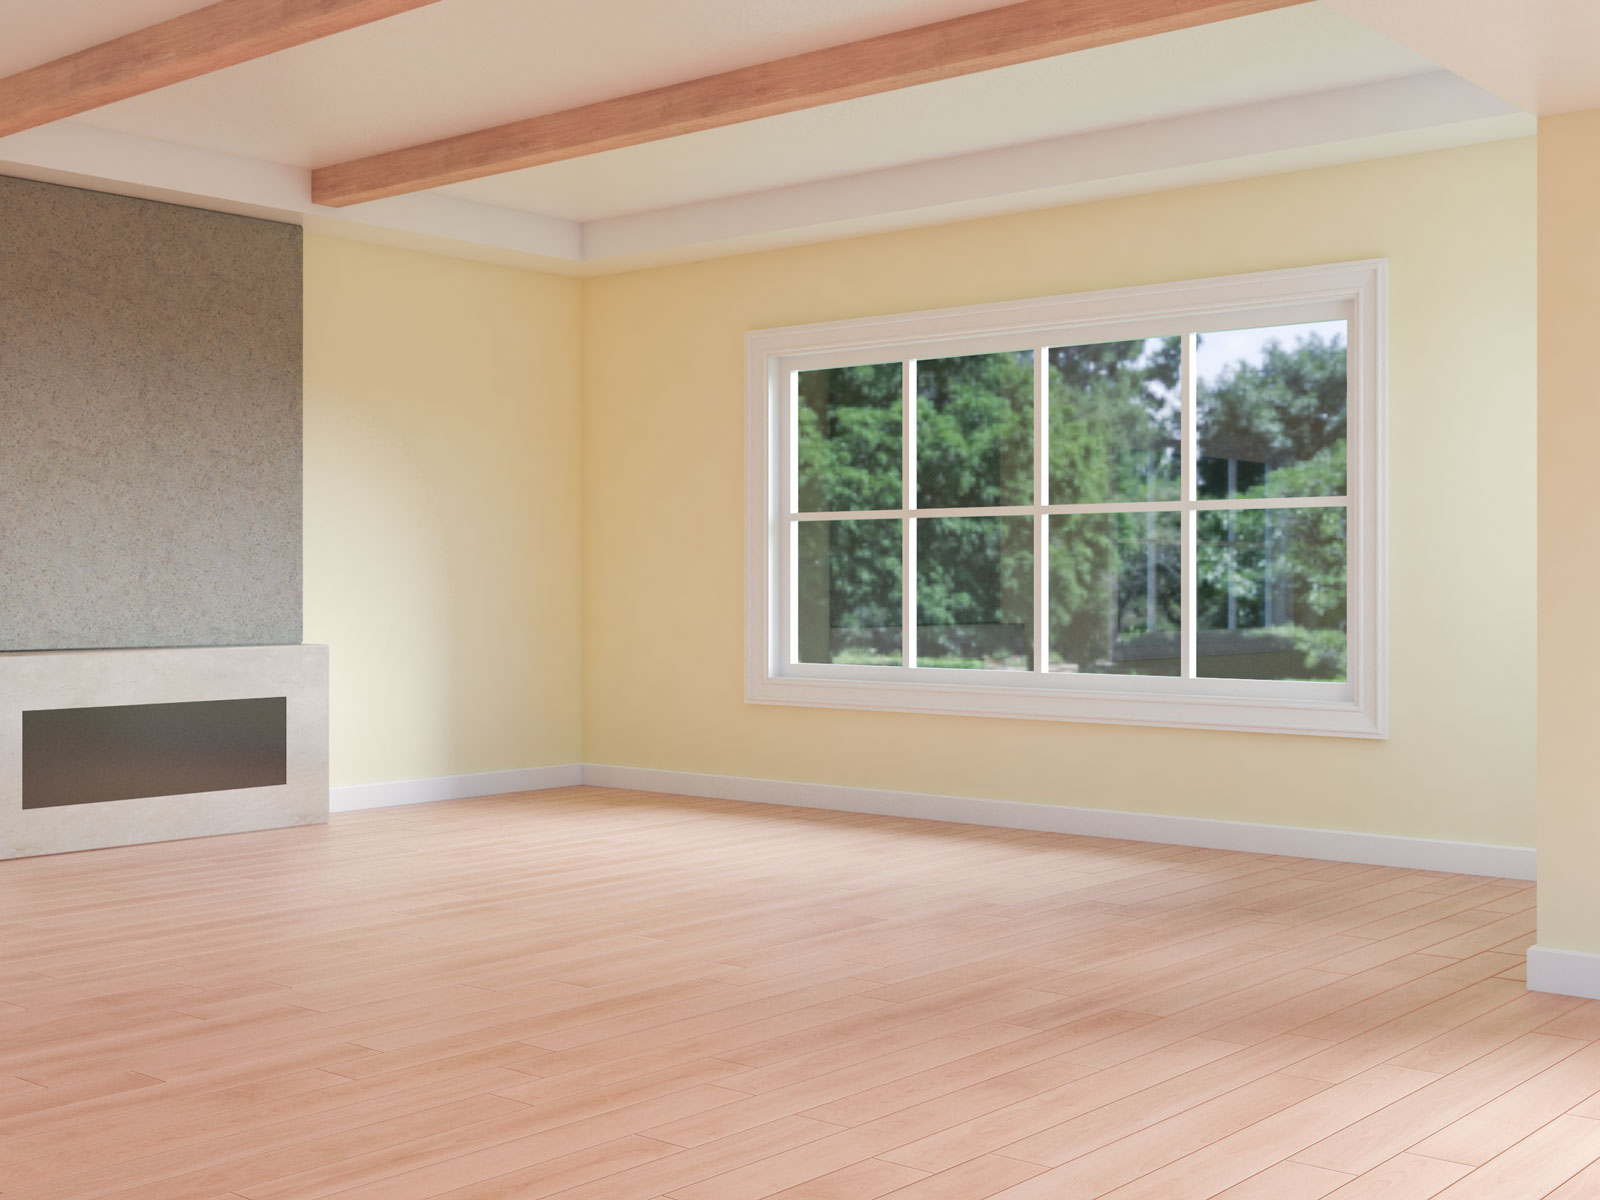 Light yellow walls with red wood flooring